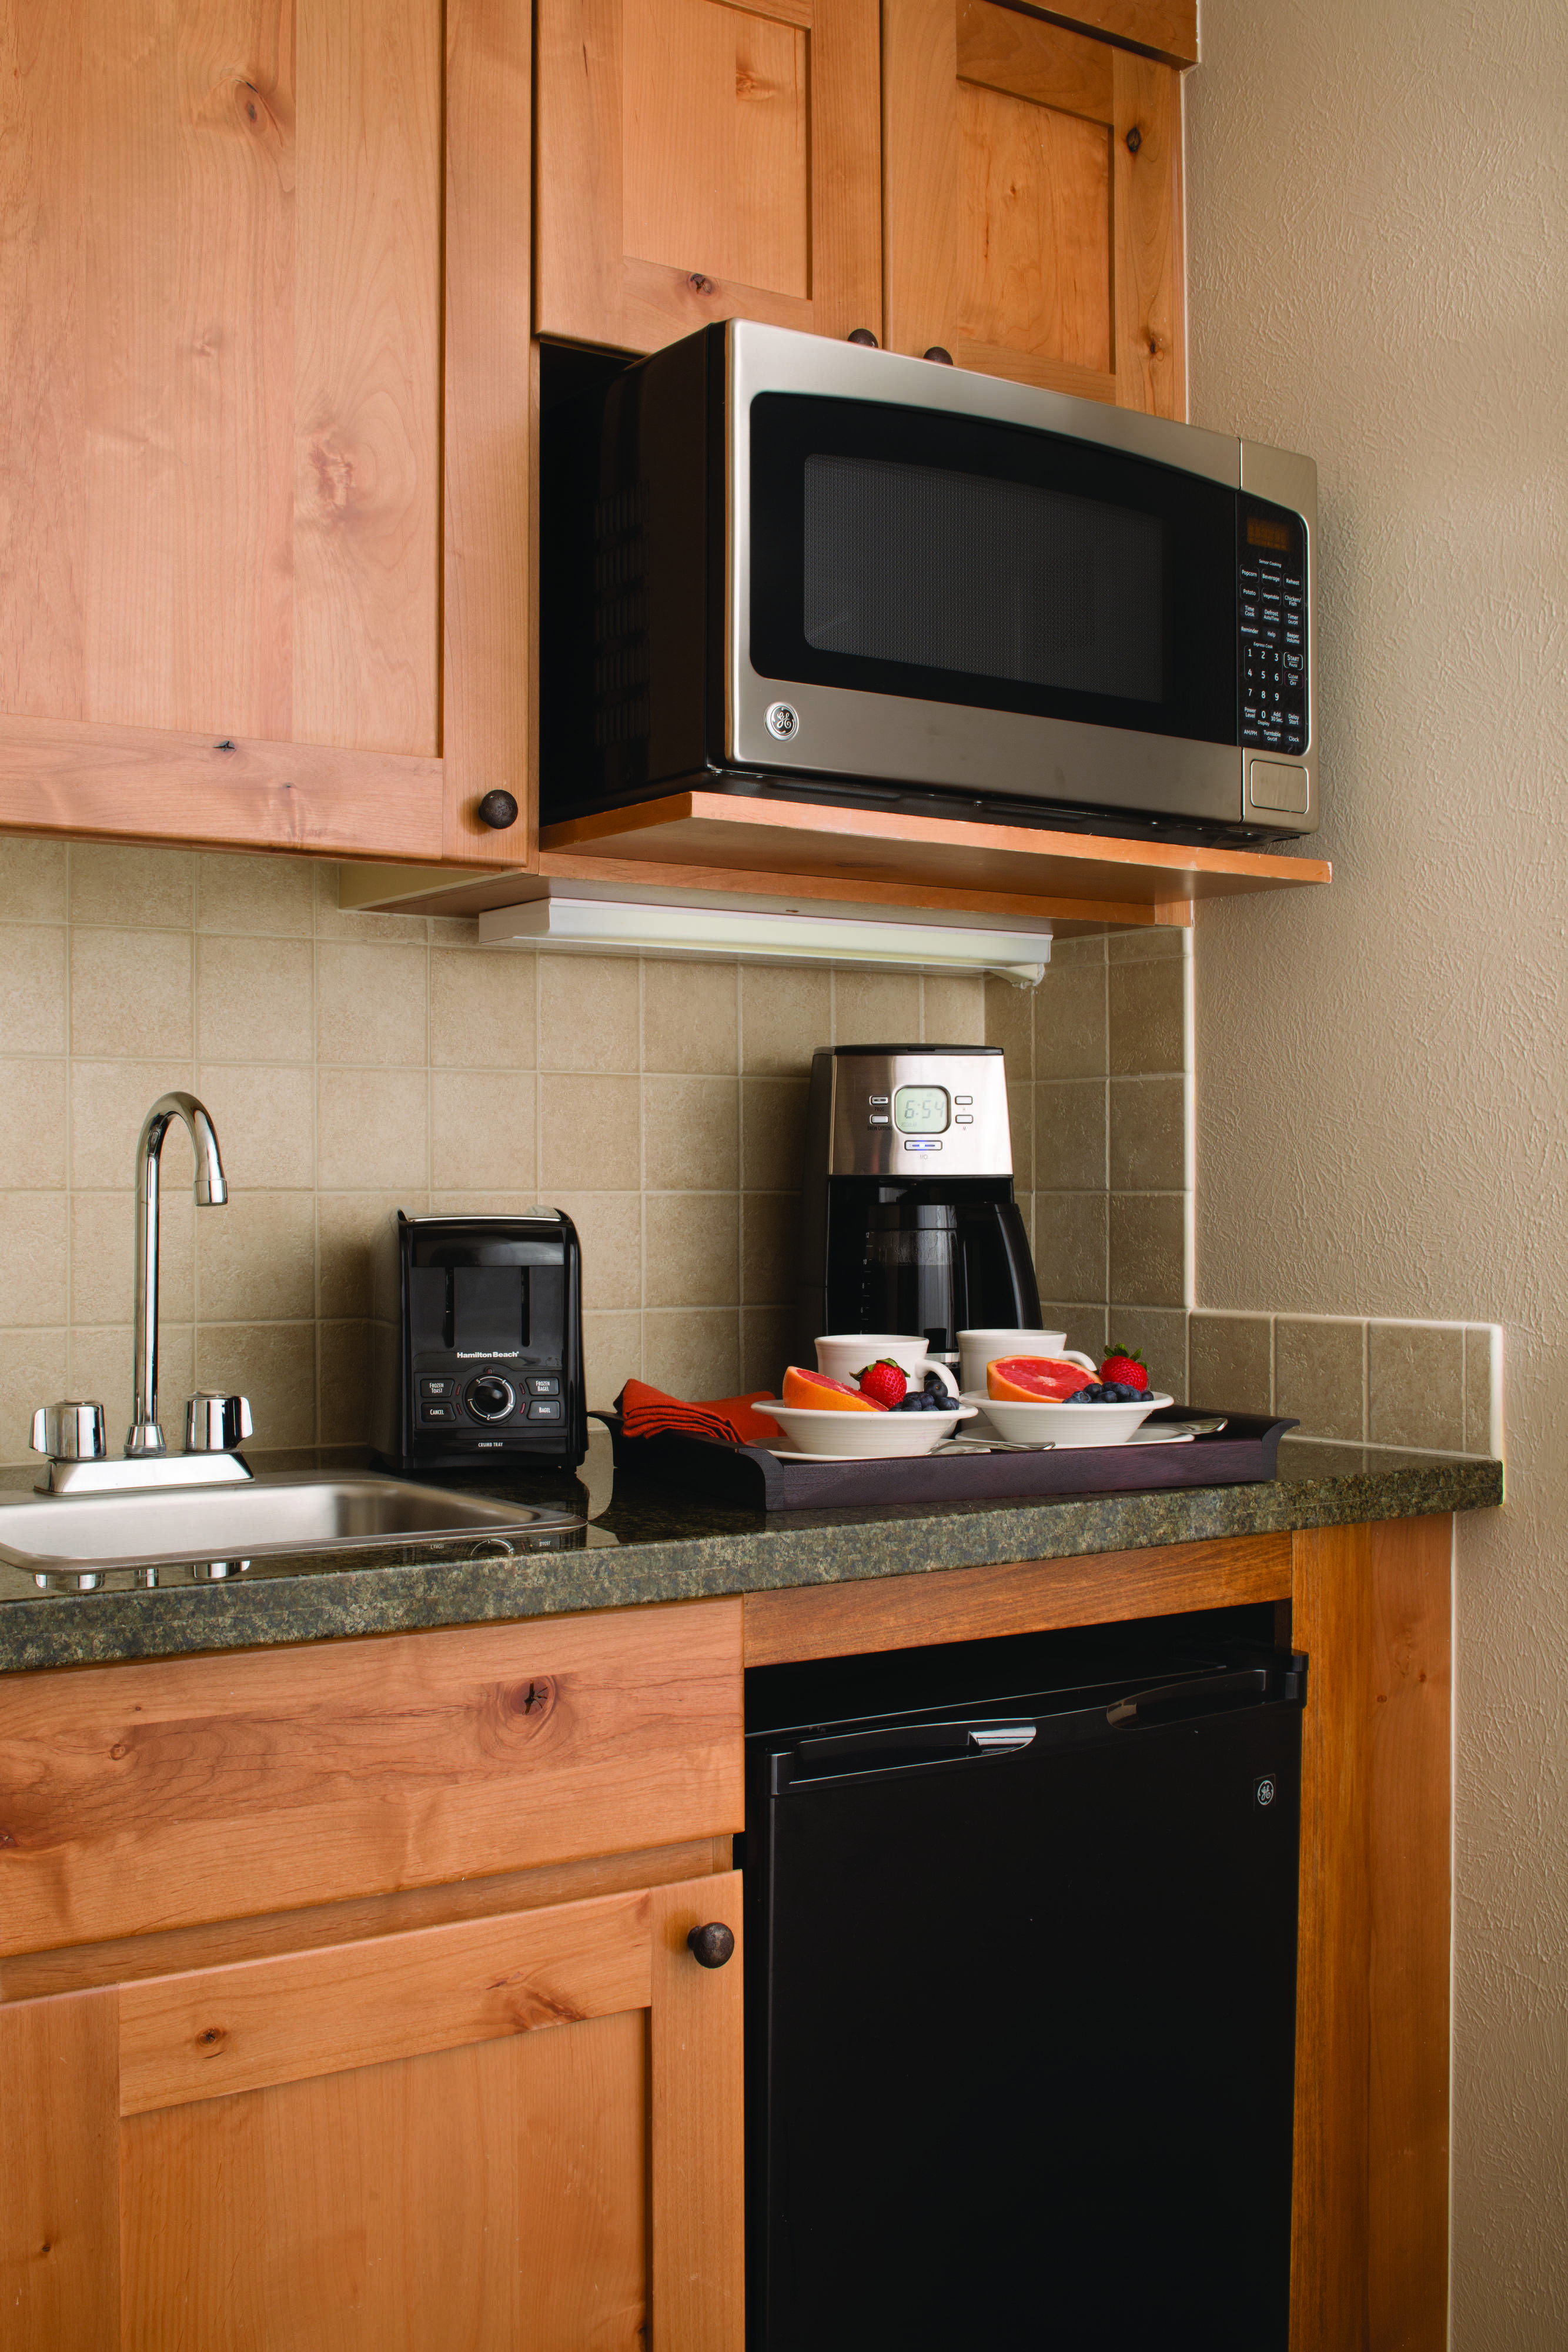 Marriott S Timber Lodge Guest Room Kitchenette Holiday Enjoying Guestroom